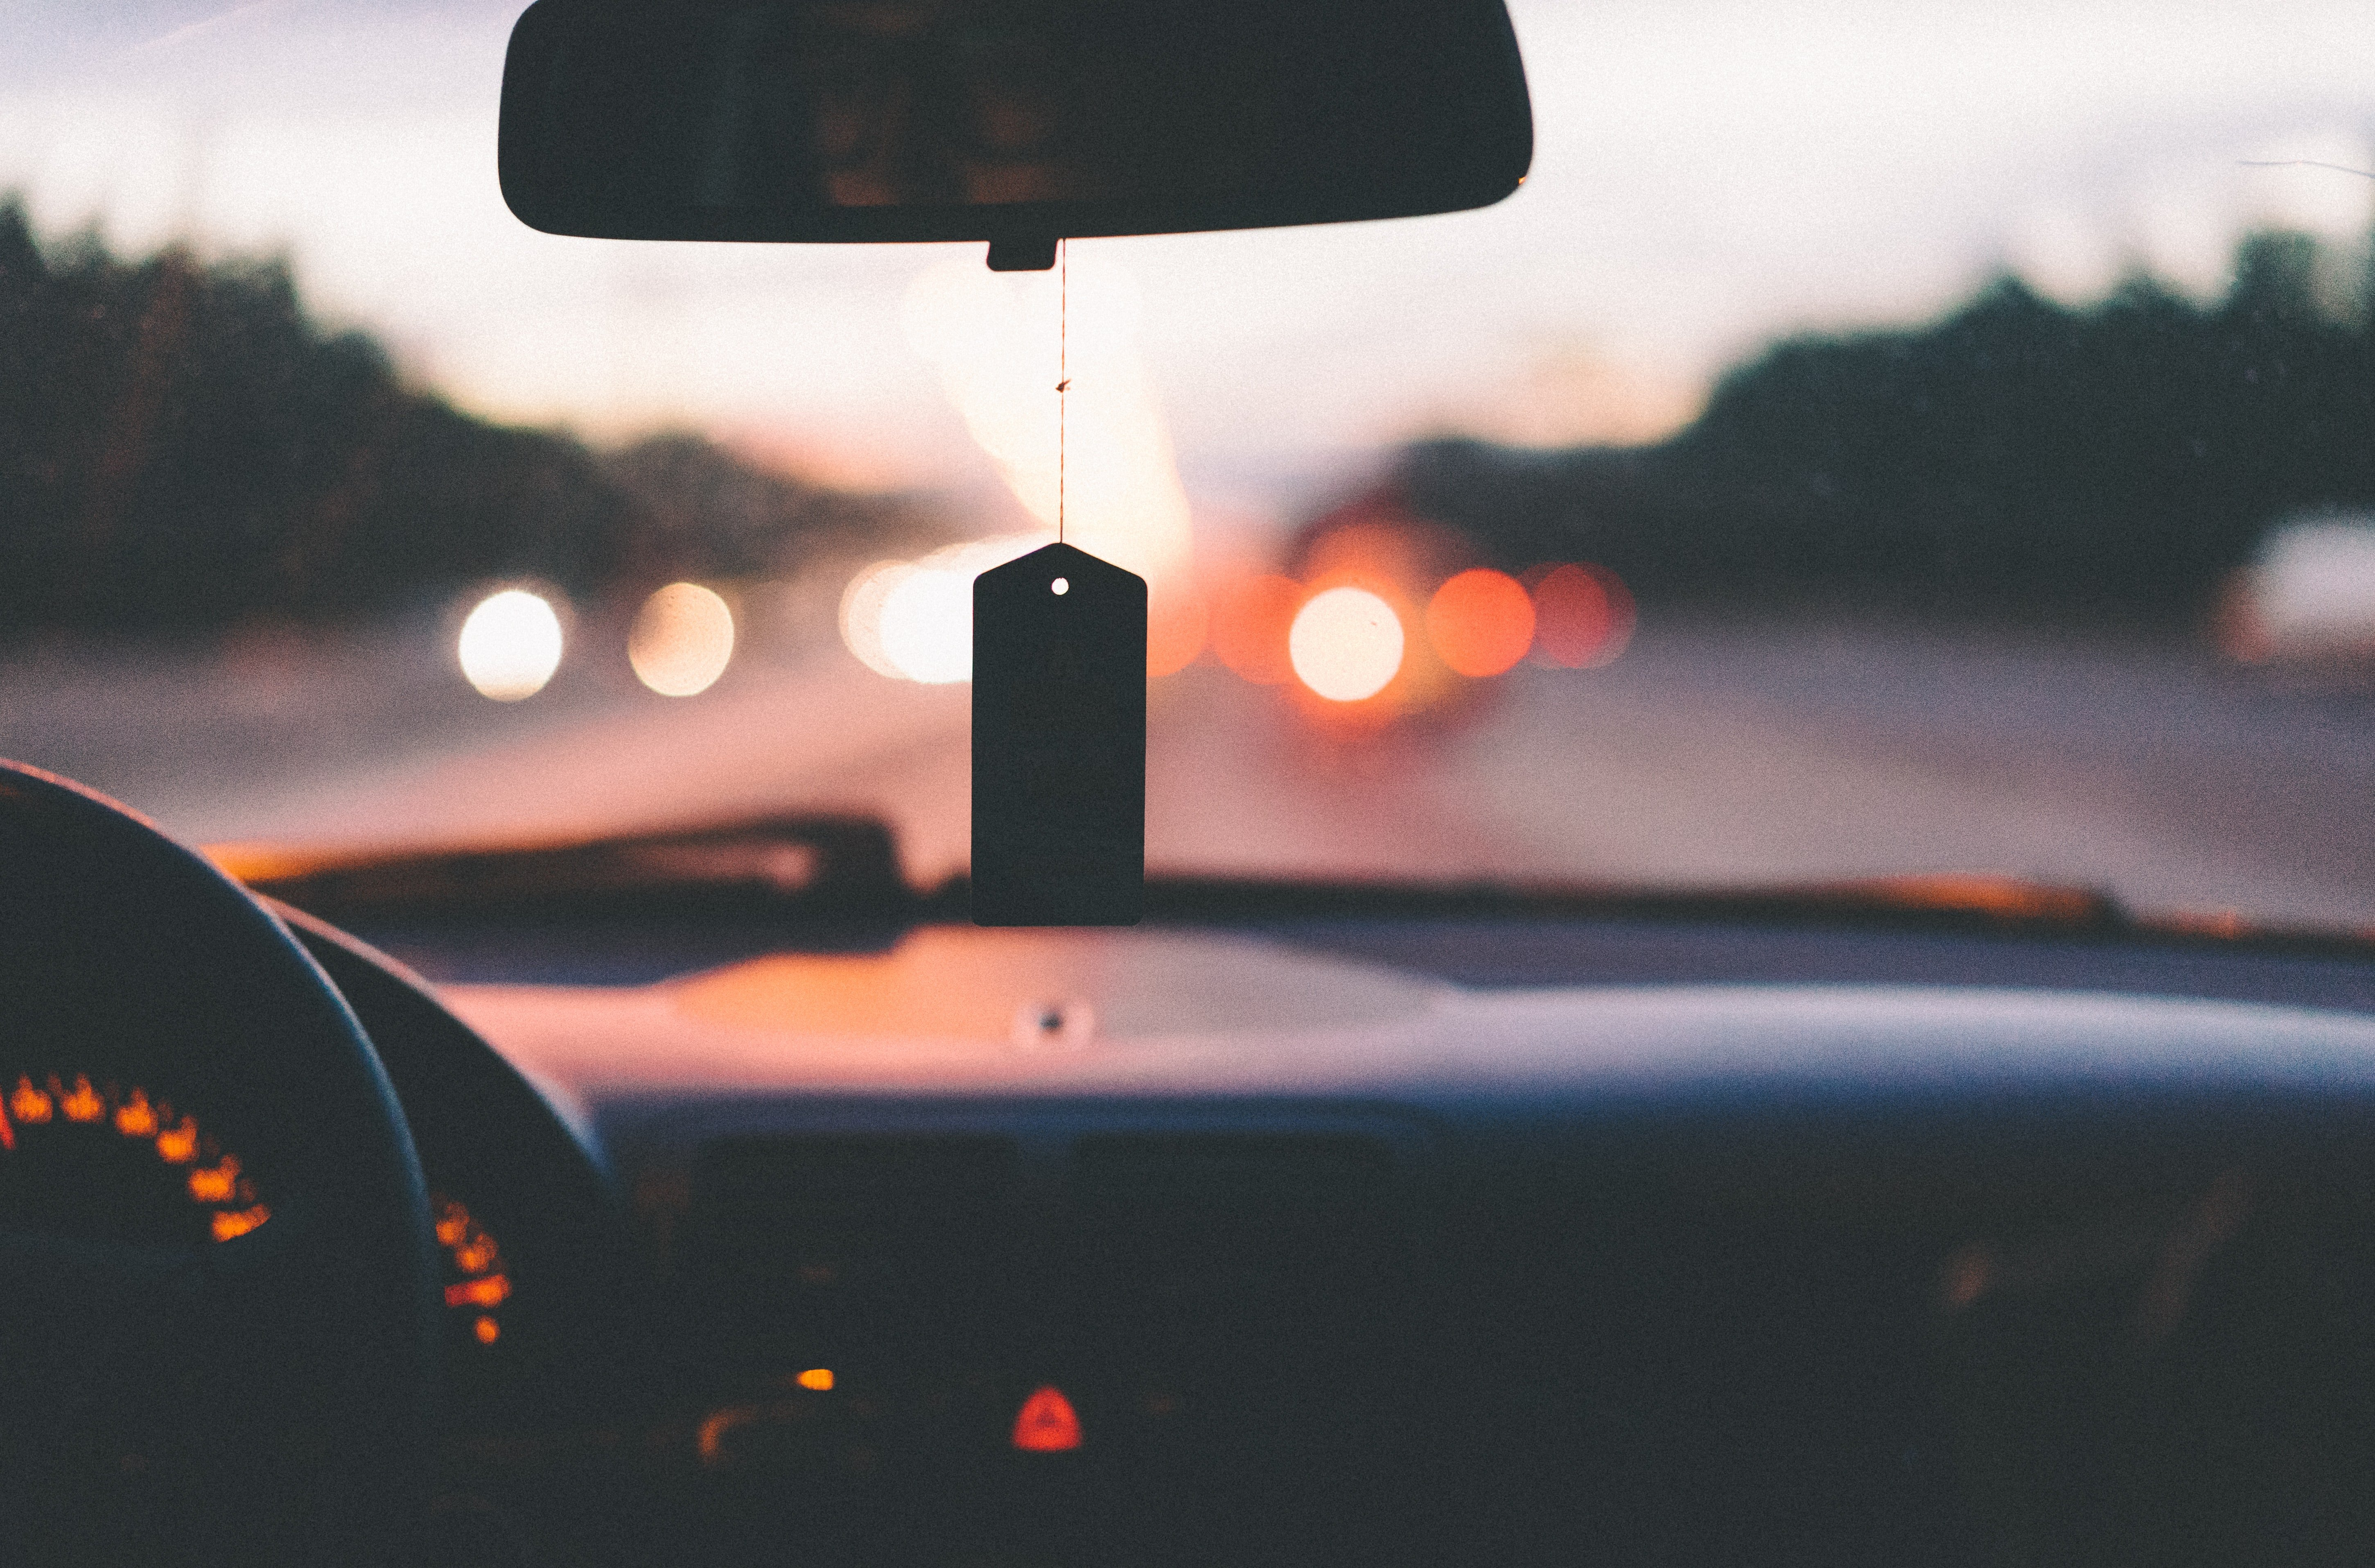 Annette drove us to a place outside town. | Source: Unsplash